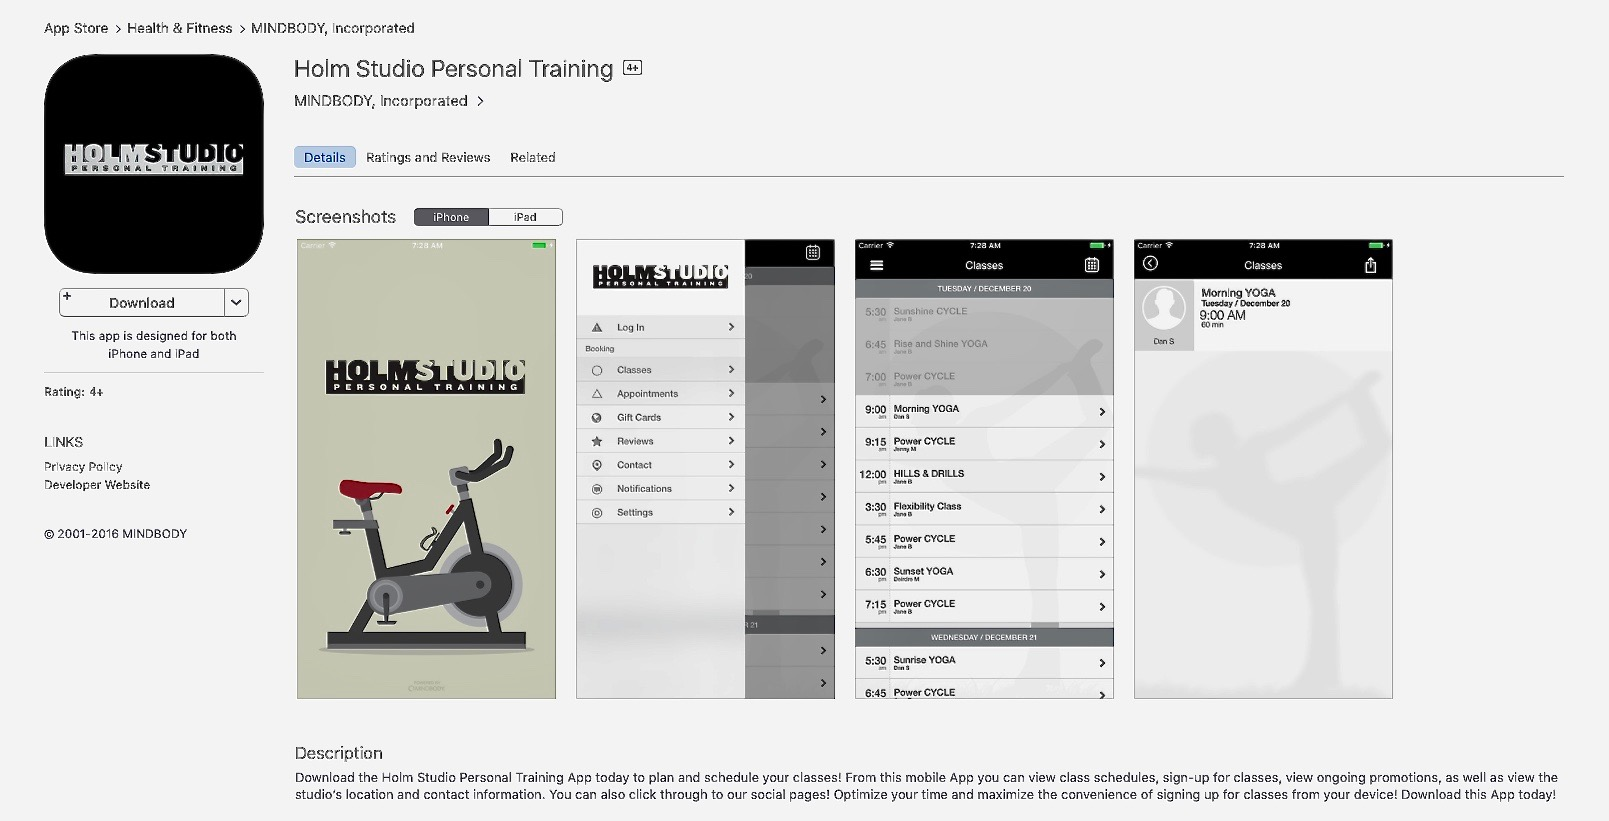 DOWNLOAD OUR APP - FOR CURRENT CLASS SCHEDULE